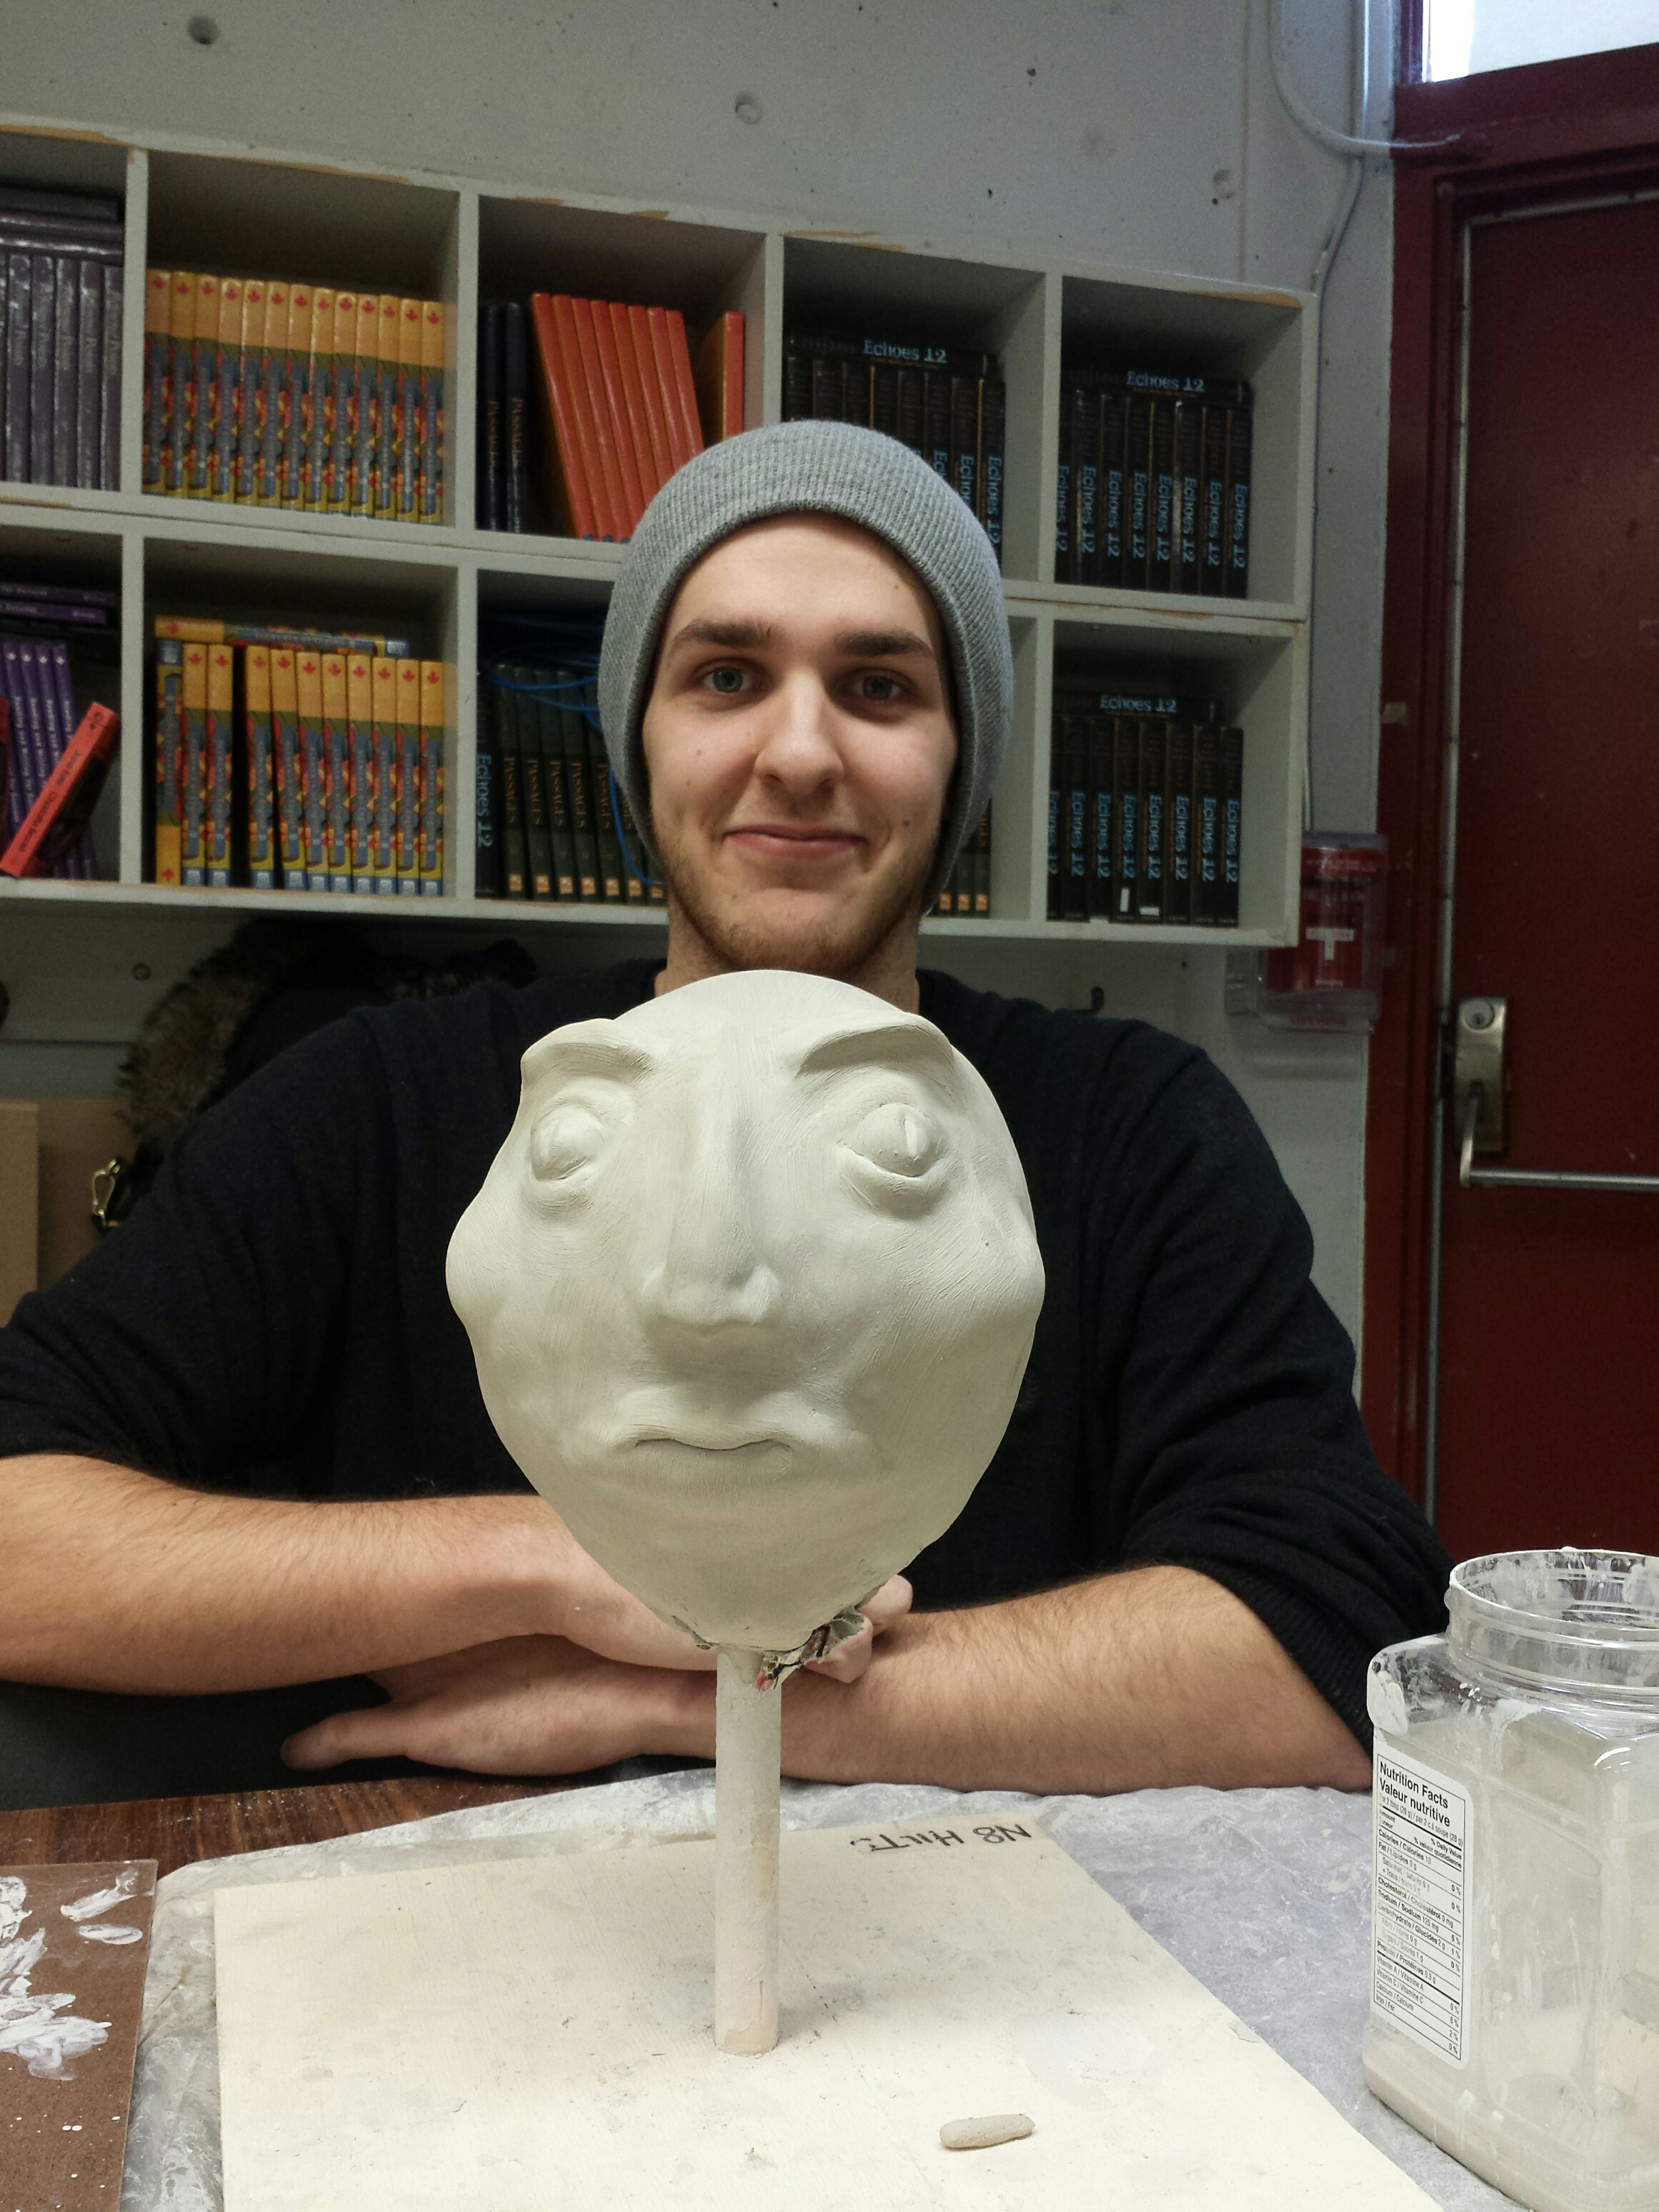 nate and his sculpture